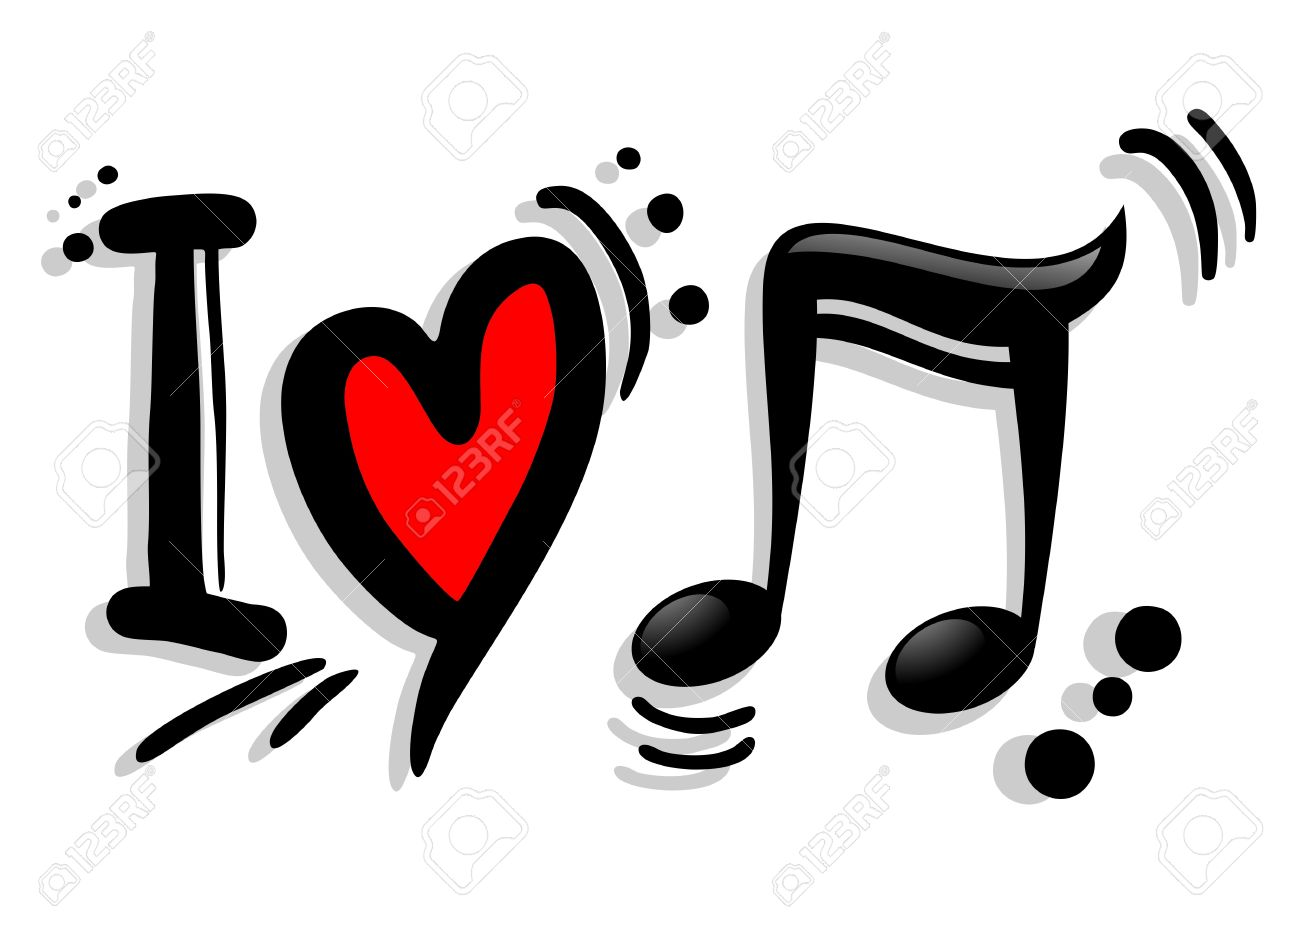 I love music symbol royalty free cliparts vectors and stock i love music symbol stock vector 19993638 buycottarizona Gallery